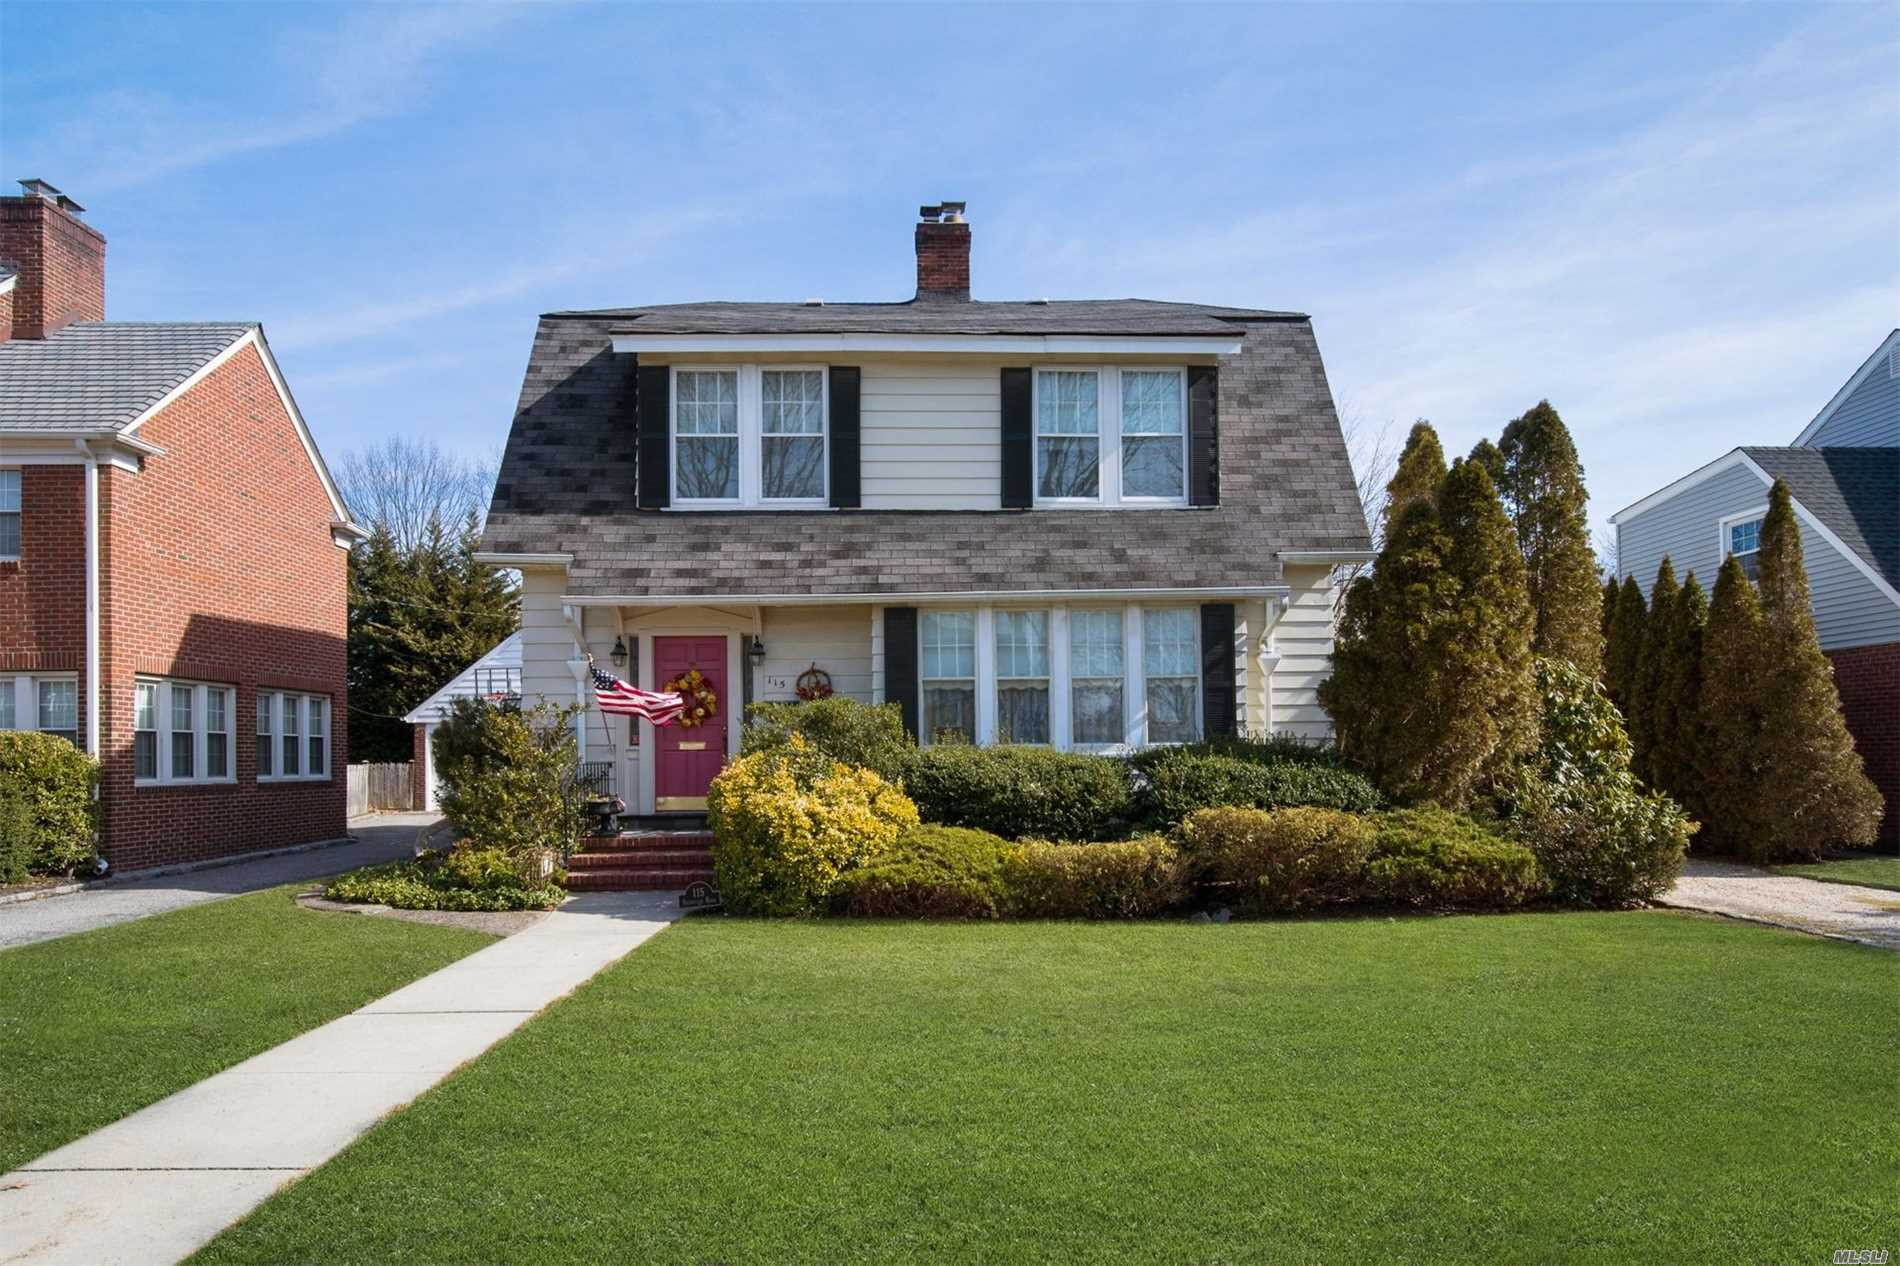 This Traditional Dutch Colonial Exudes Classic Charm & Timeless Sophistication - Perfectly Situated Mid-Block On 60X110 Lot In The Heart Of The Estates Section. First Flr Features Fyr, Lr W/Fp, Fdr, Kit W/ Dining Area, Full Bath & 3 Season Rm. Second Flr Offers 4 Bedrms & Full Bathrm. Full Bsmt W/ Ose, 2 Rec Rms, Lndry & Storage Space. New Boiler, Igs, Water Filtration System, 1 Car Garage. The Home Enjoys Low Taxes Is Proximate To 2 Lirr Stations, School & Park - The Perfect Place To Call Home!